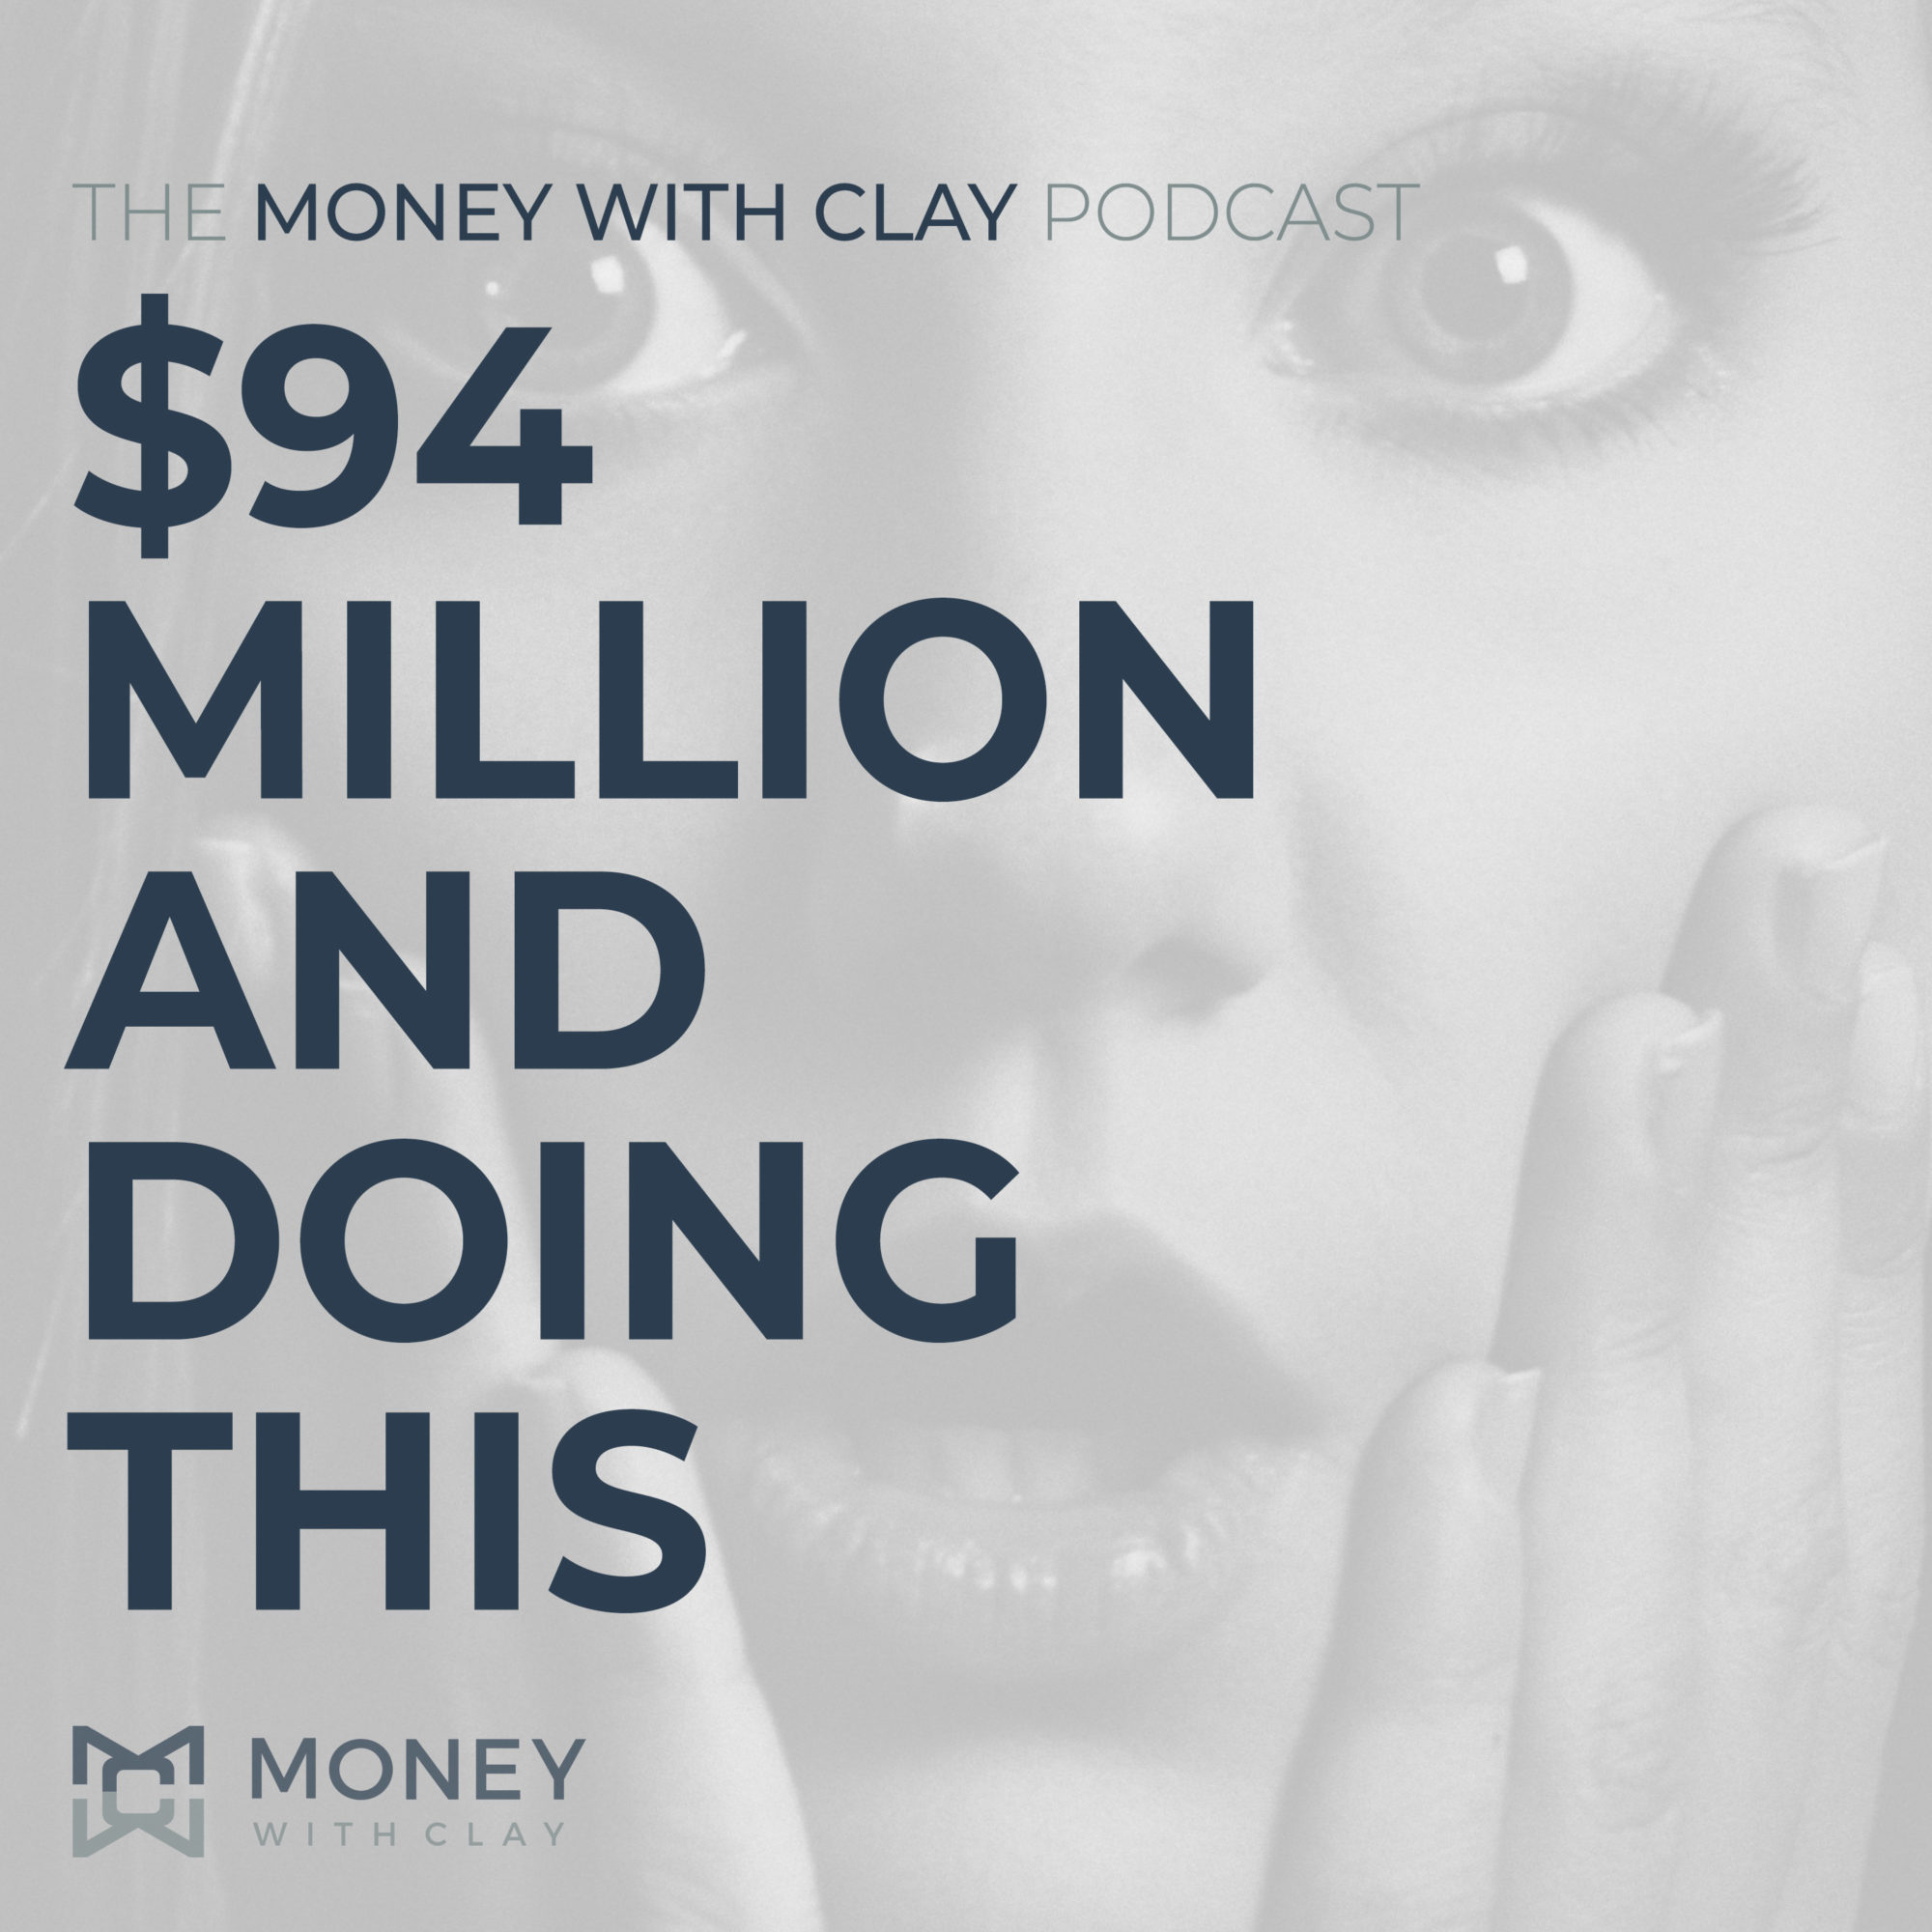 #059 - $94 Million And Doing This...